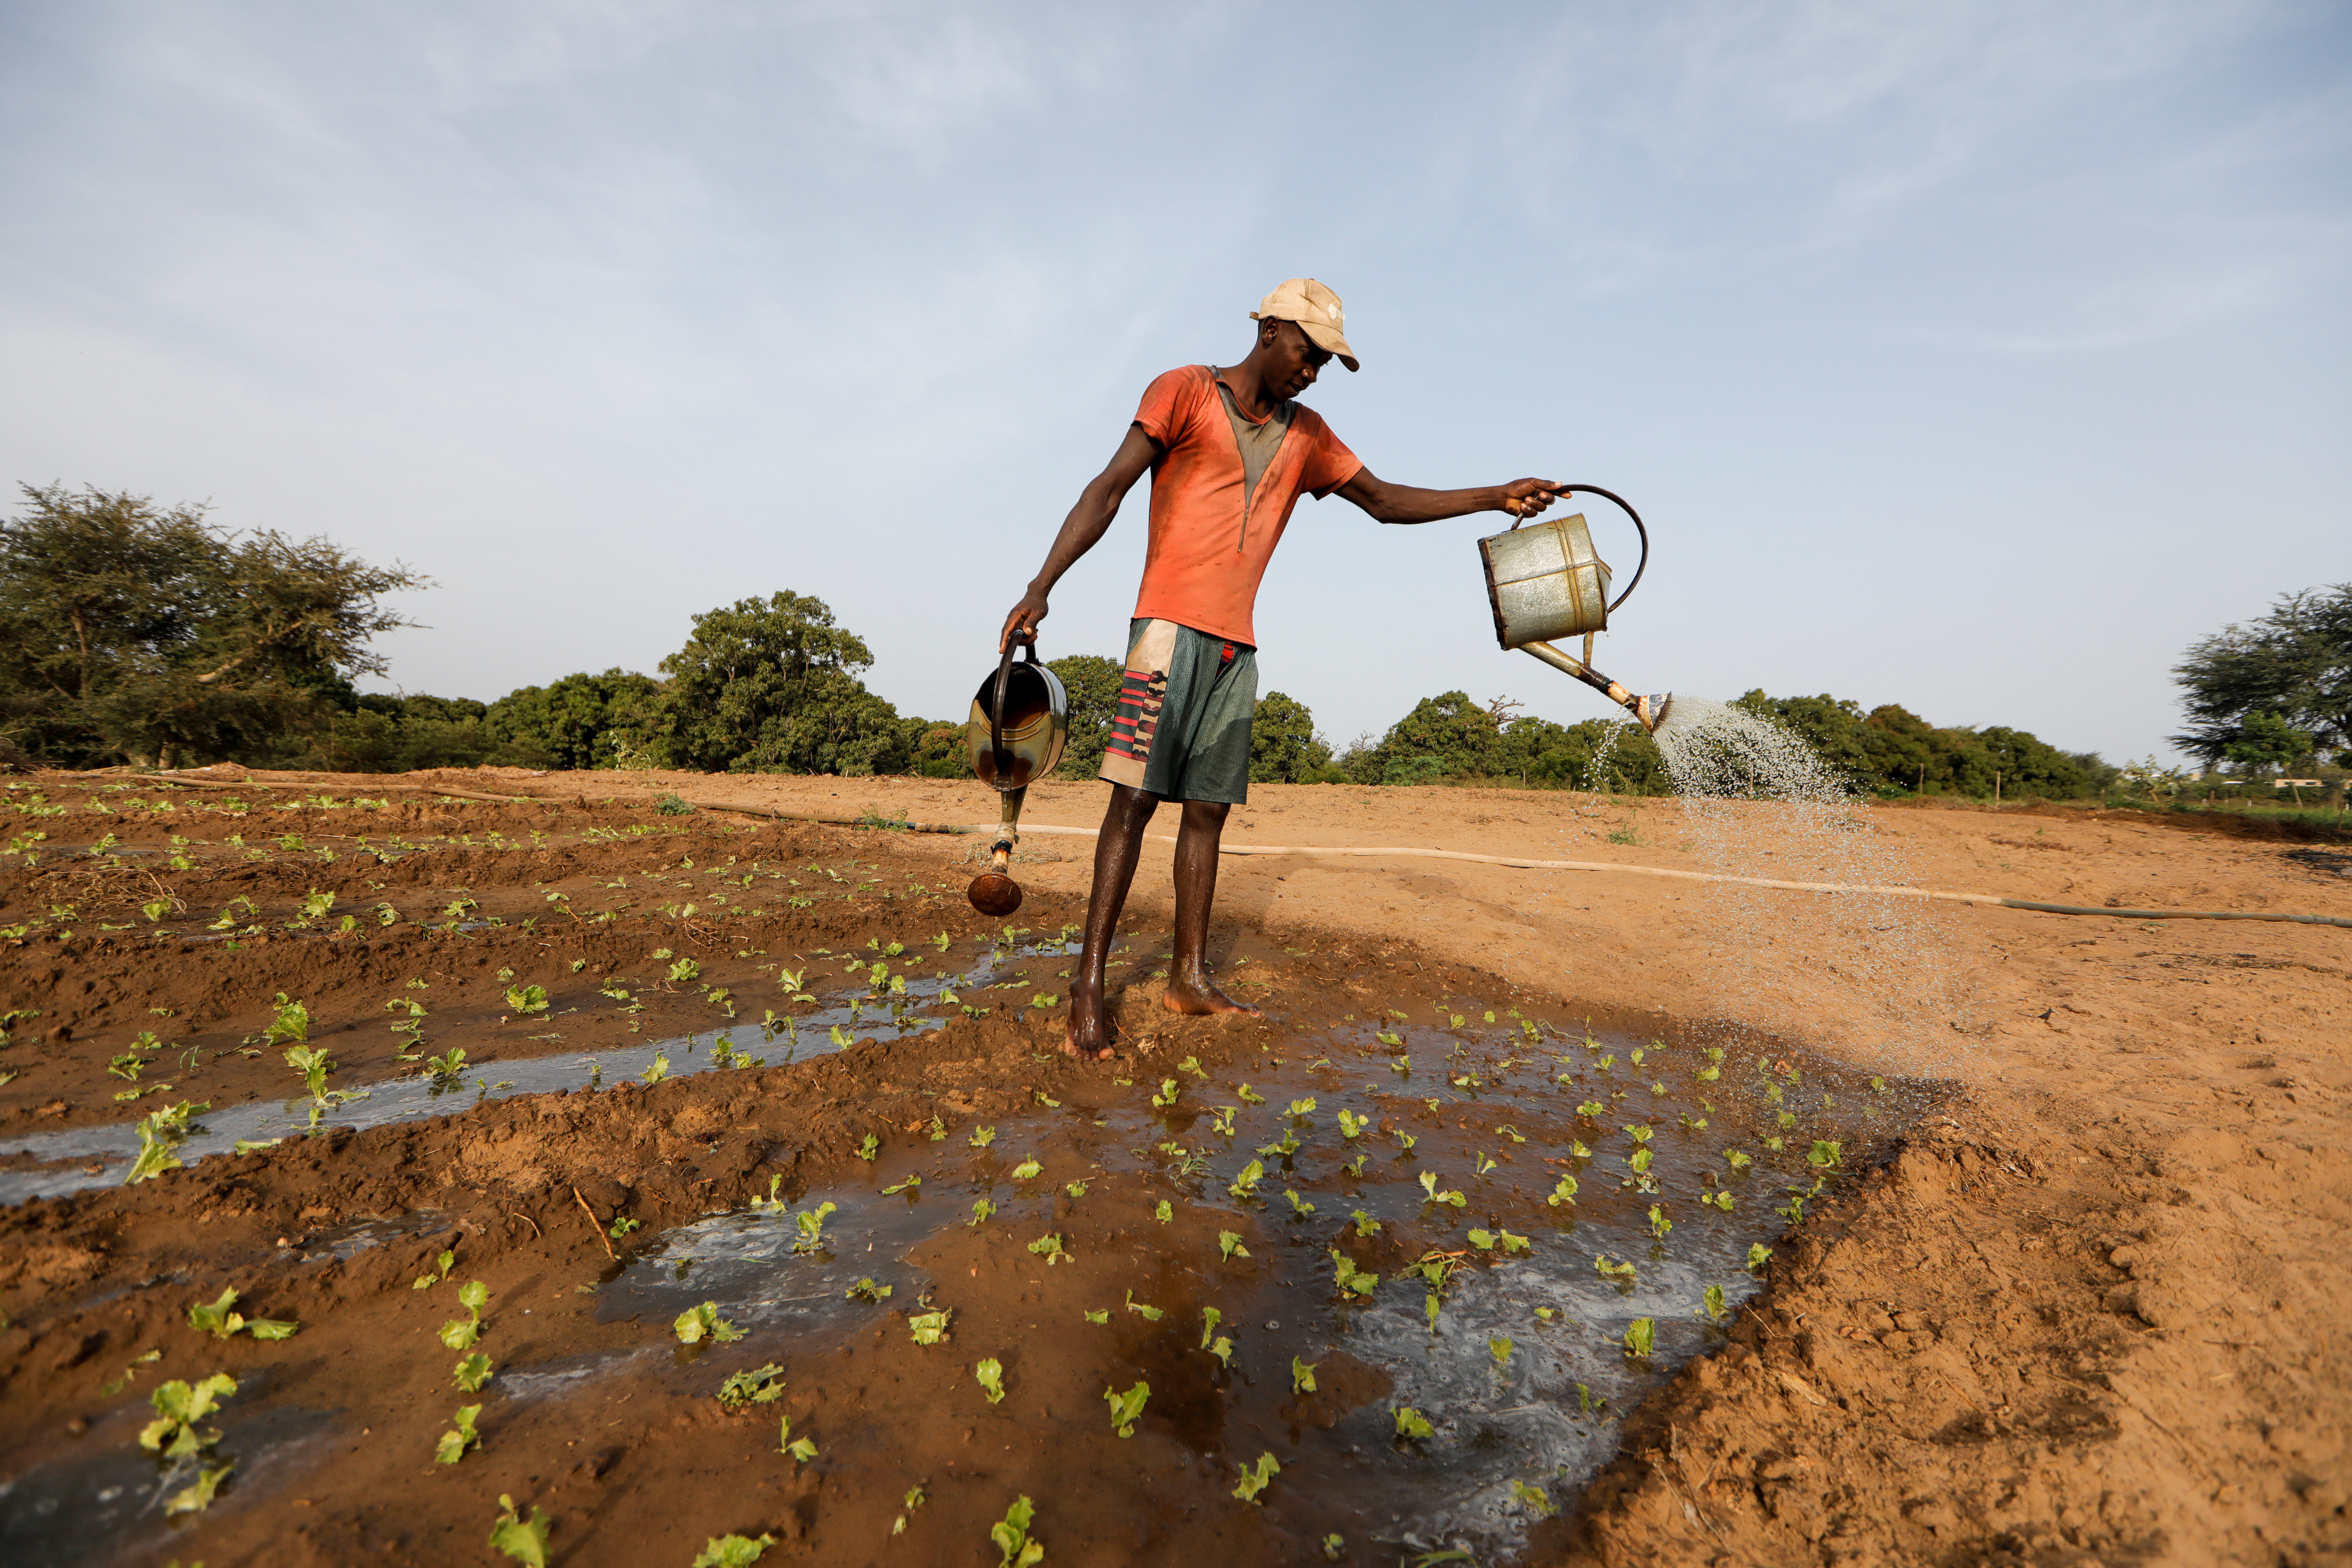 A farm worker manually irrigates a salad field, amid the outbreak of the coronavirus disease (COVID-19), In Thies, Senegal June 3, 2020. Picture taken June 3, 2020.